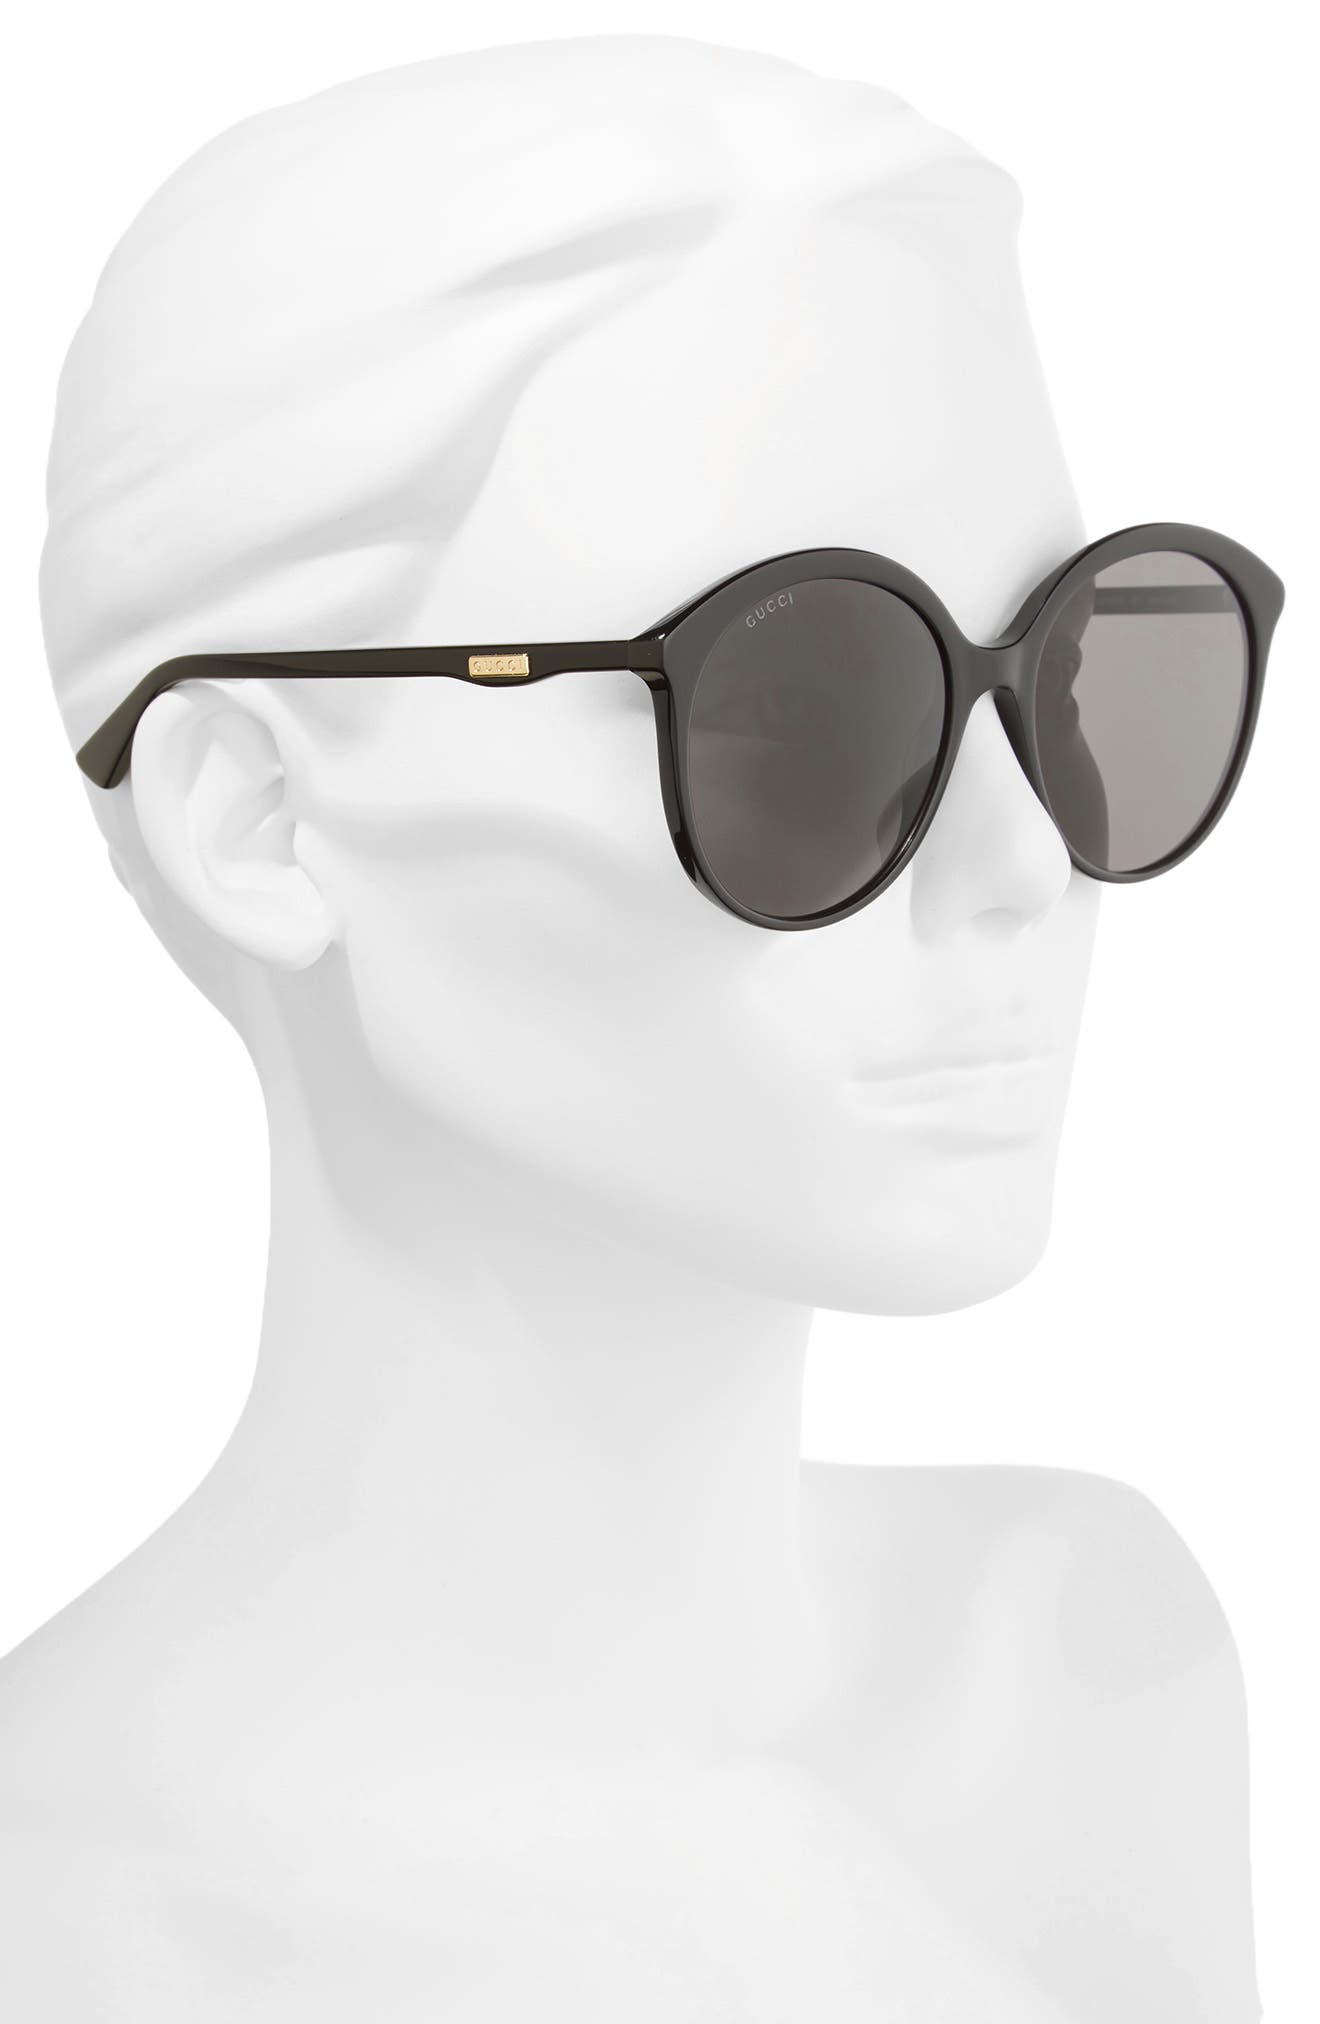 59mm Round Sunglasses,                             Alternate thumbnail 2, color,                             001